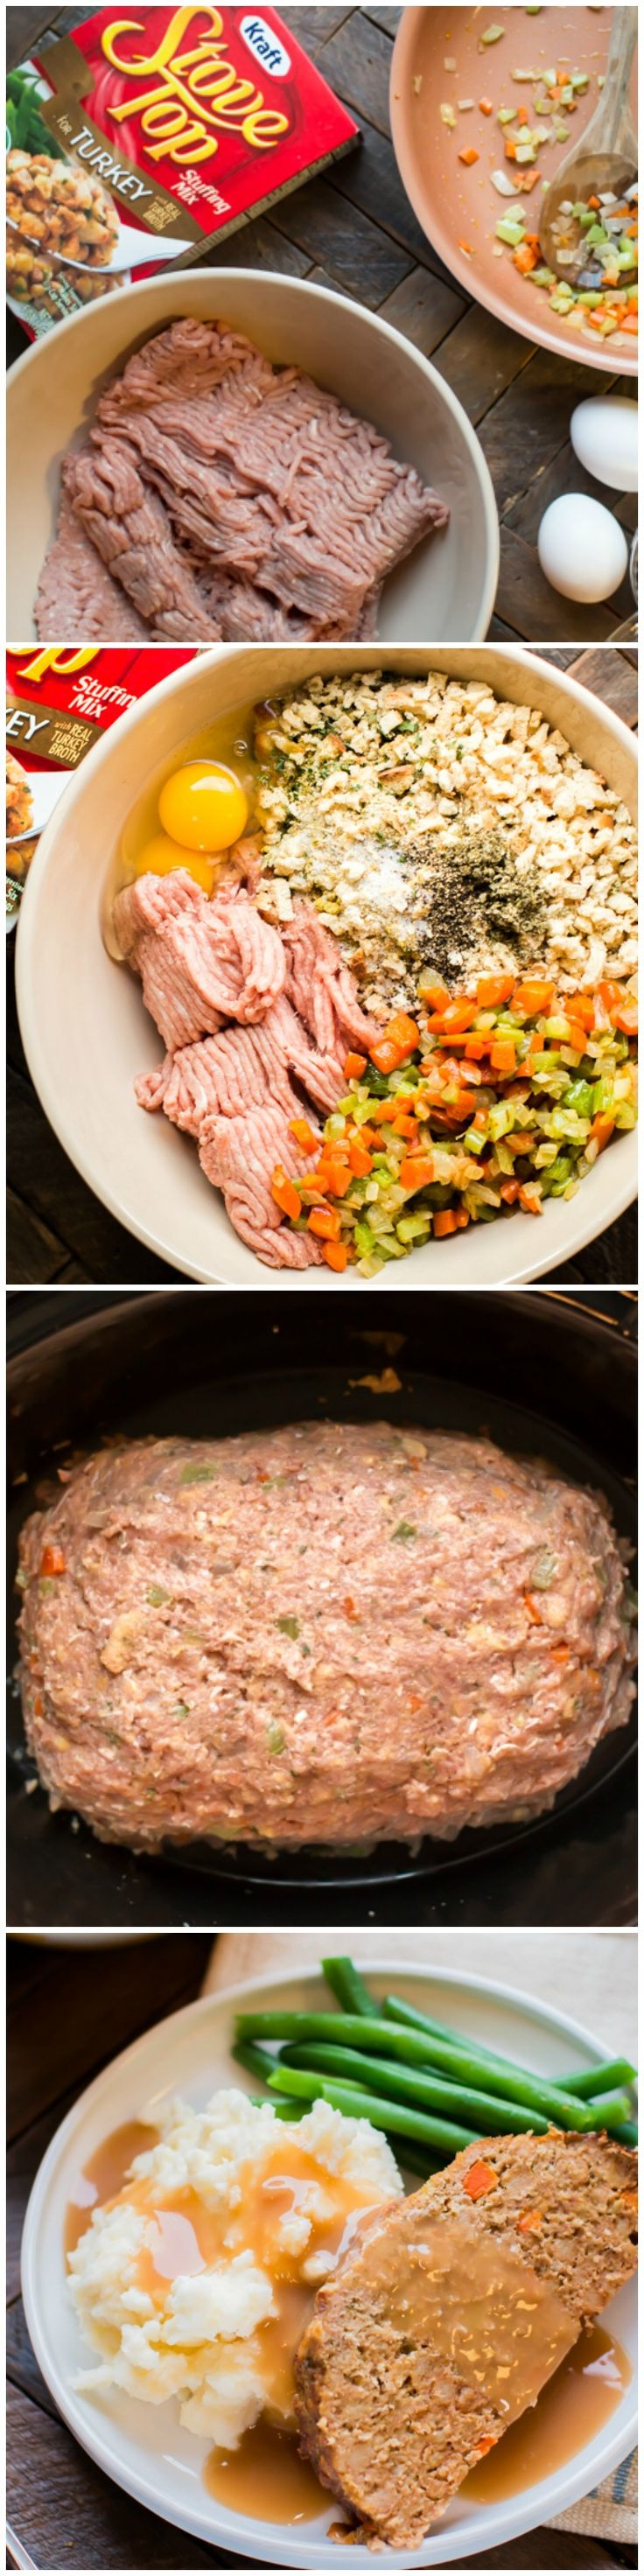 Slow Cooker Stove-Top Stuffing Turkey Meatloaf. Stuffing mix is used as a binder in this delicious turkey meatloaf!